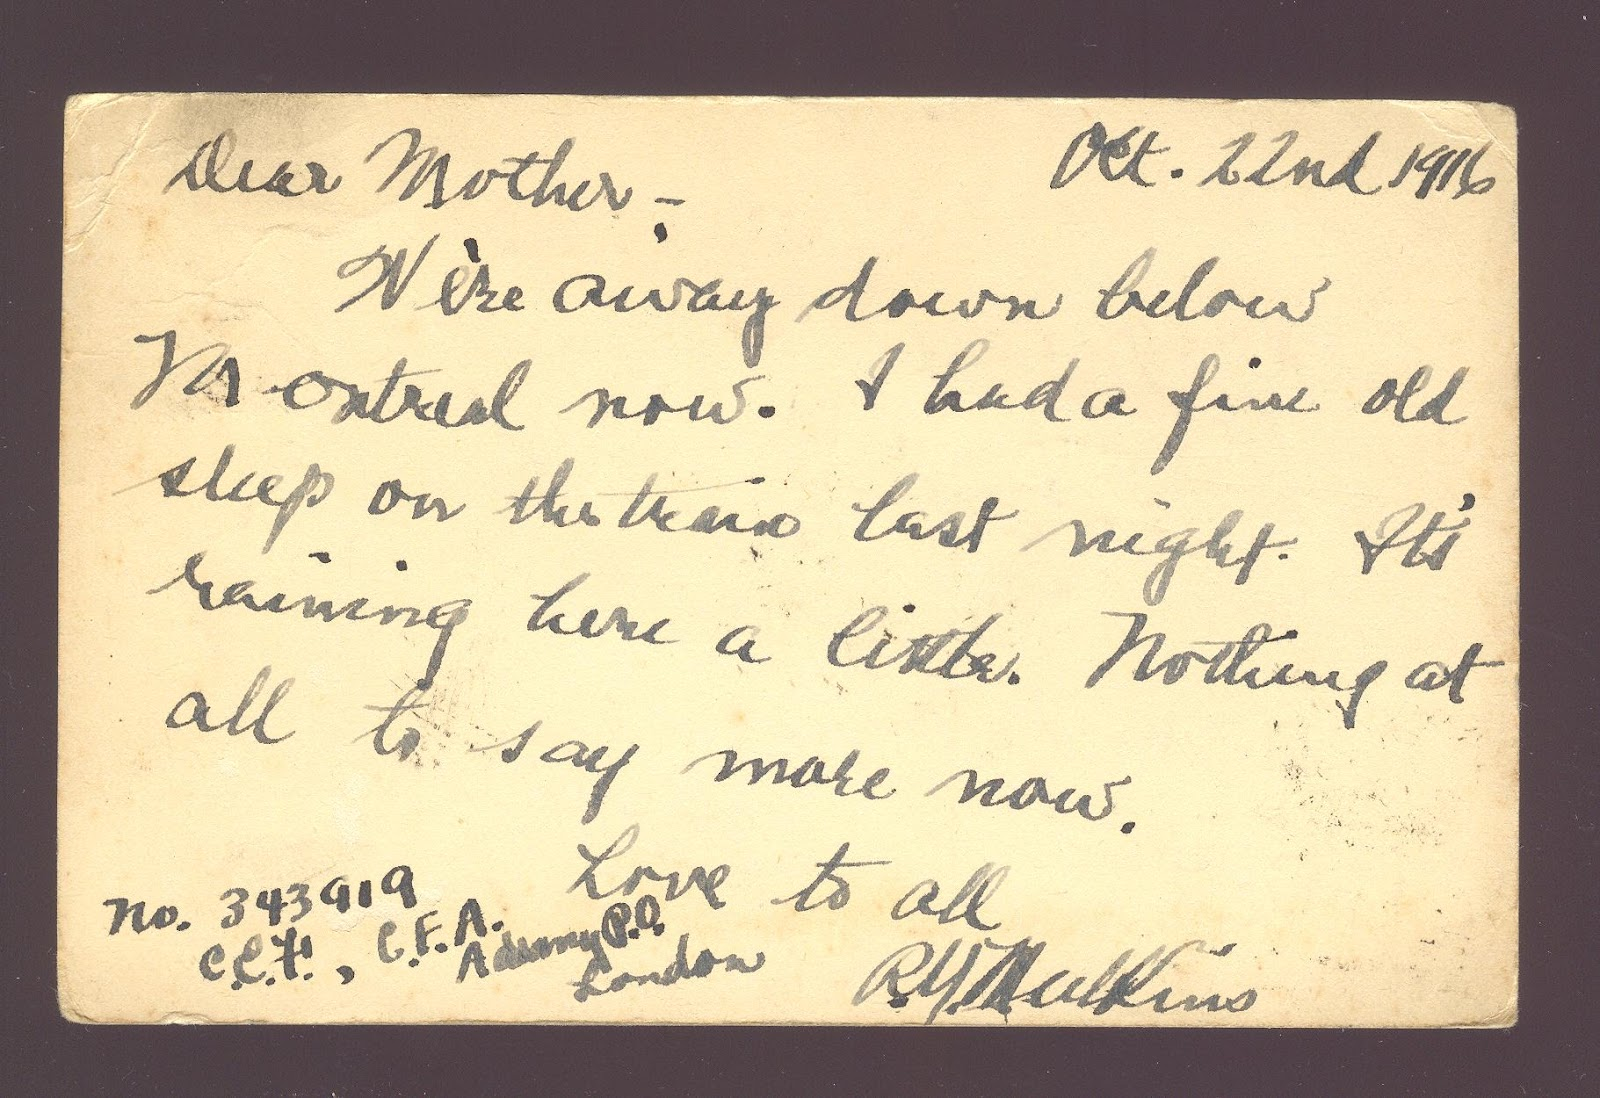 letter a wwi soldier s account In world war one  gallipoli memorial service on anzac day  soldiers and suffragettes  tito's secret bunker  unseen wwi photographs  poppy harvest   soldier's last letters home.